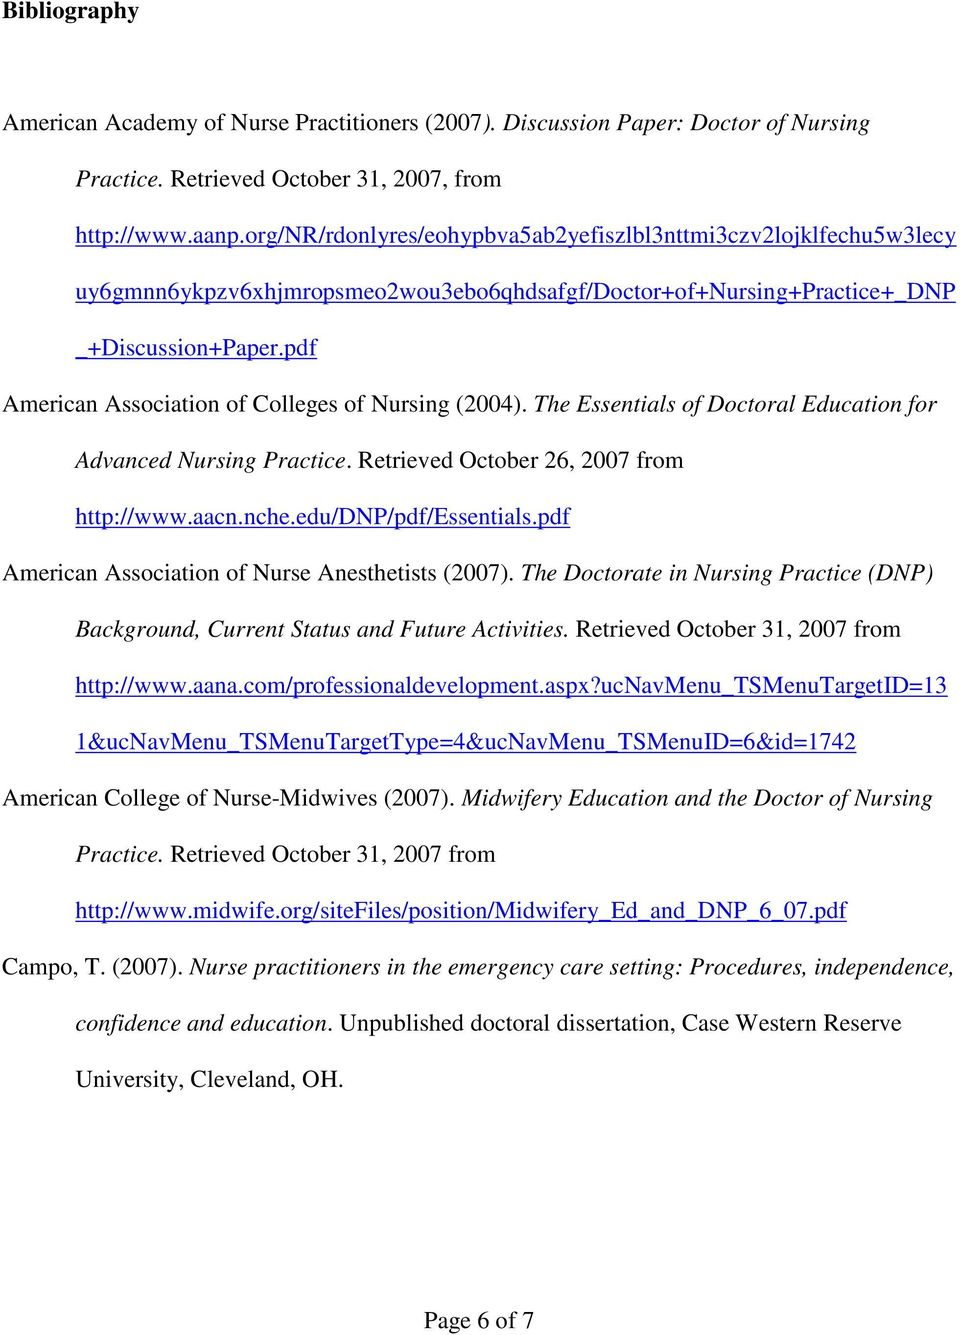 pdf American Association of Colleges of Nursing (2004). The Essentials of Doctoral Education for Advanced Nursing Practice. Retrieved October 26, 2007 from http://www.aacn.nche.edu/dnp/pdf/essentials.